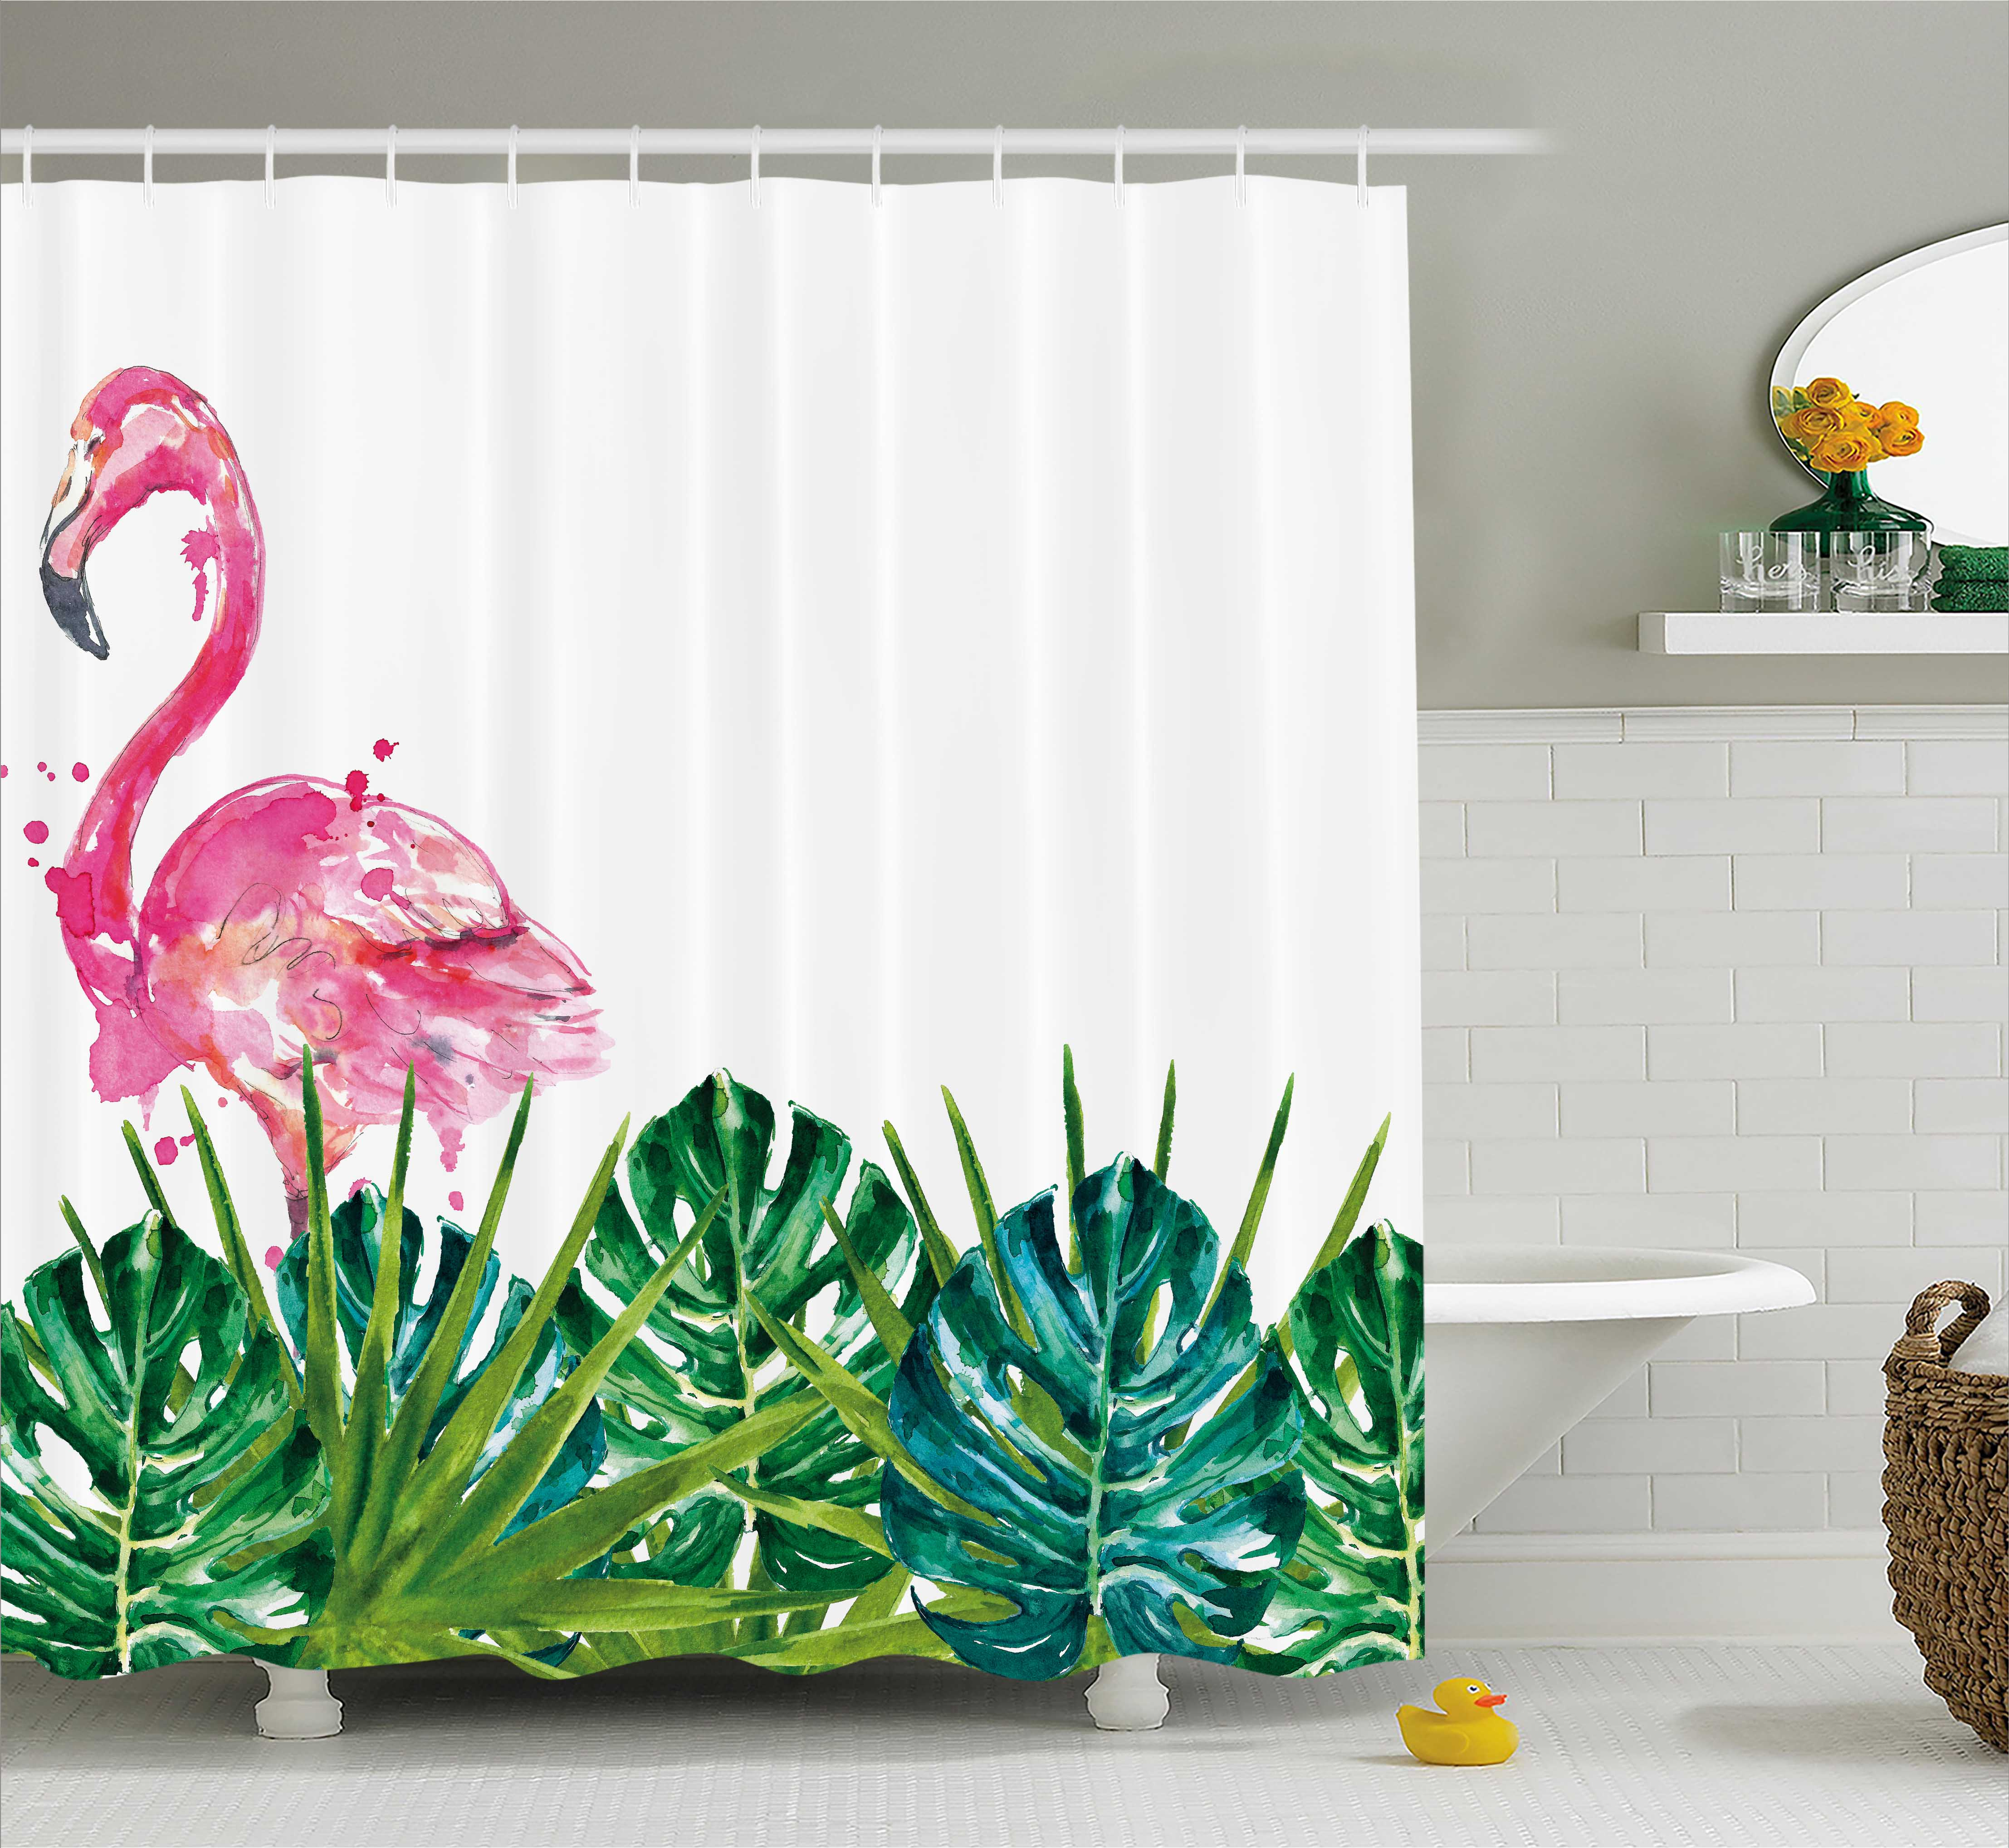 Tropical Shower Curtain Exotic Nature Botanical Artwork With Leaves And Flamingo Watercolors Fabric Bathroom Set Hooks 69W X 84L Inches